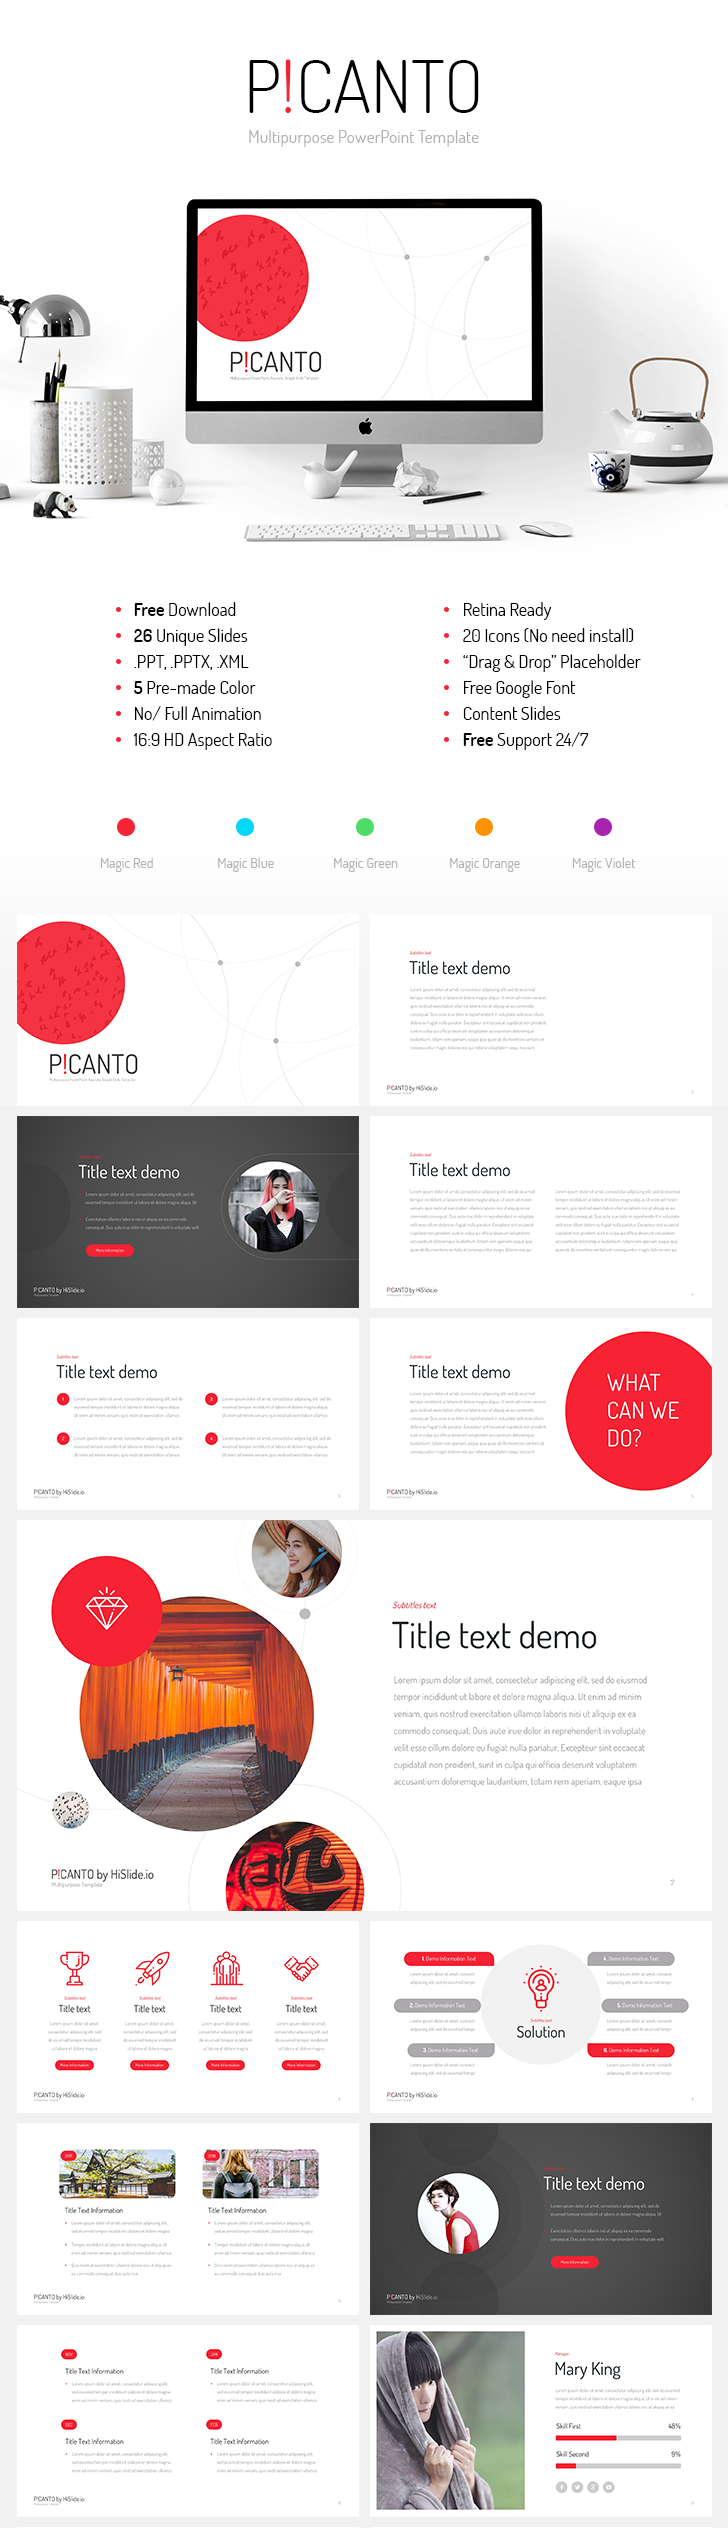 picanto ppt template free download total 130 slides